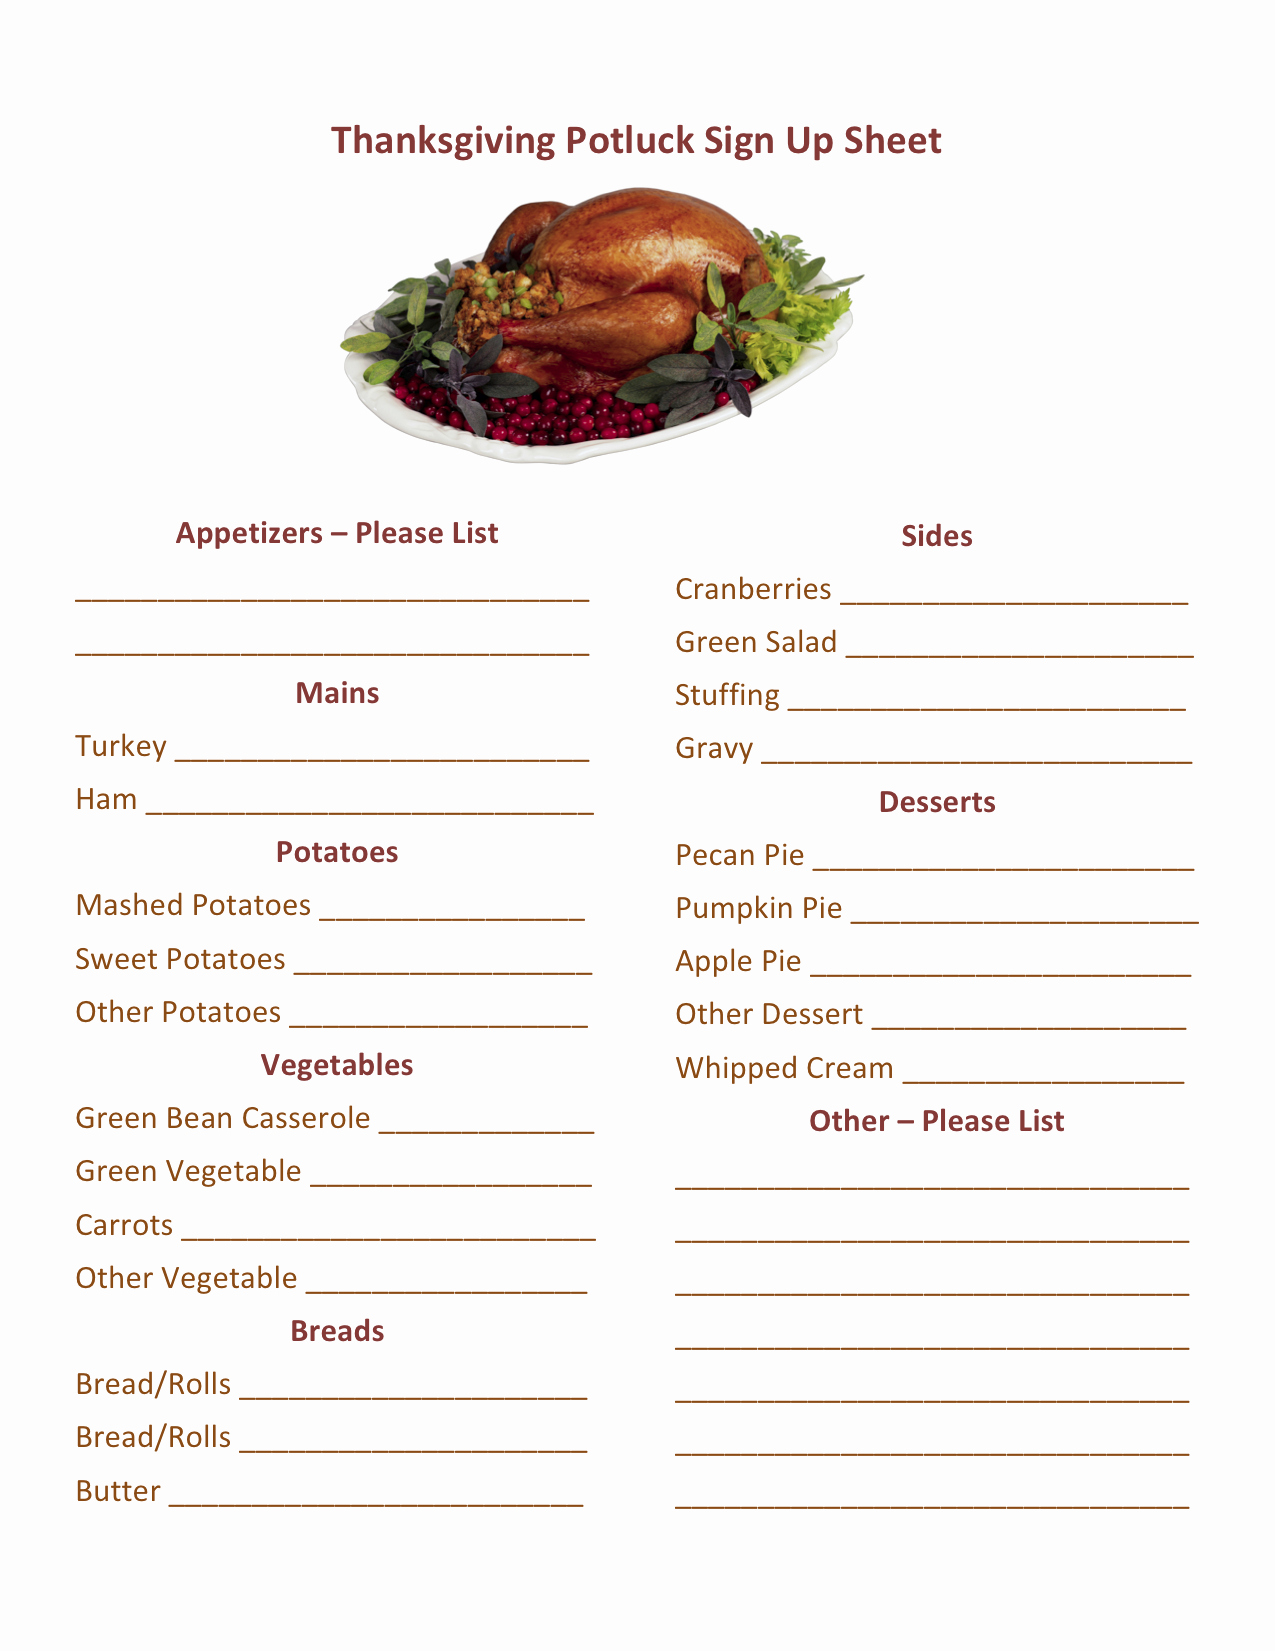 Soul Food Menu Template Luxury Thanksgiving Potluck Sign Up Printable